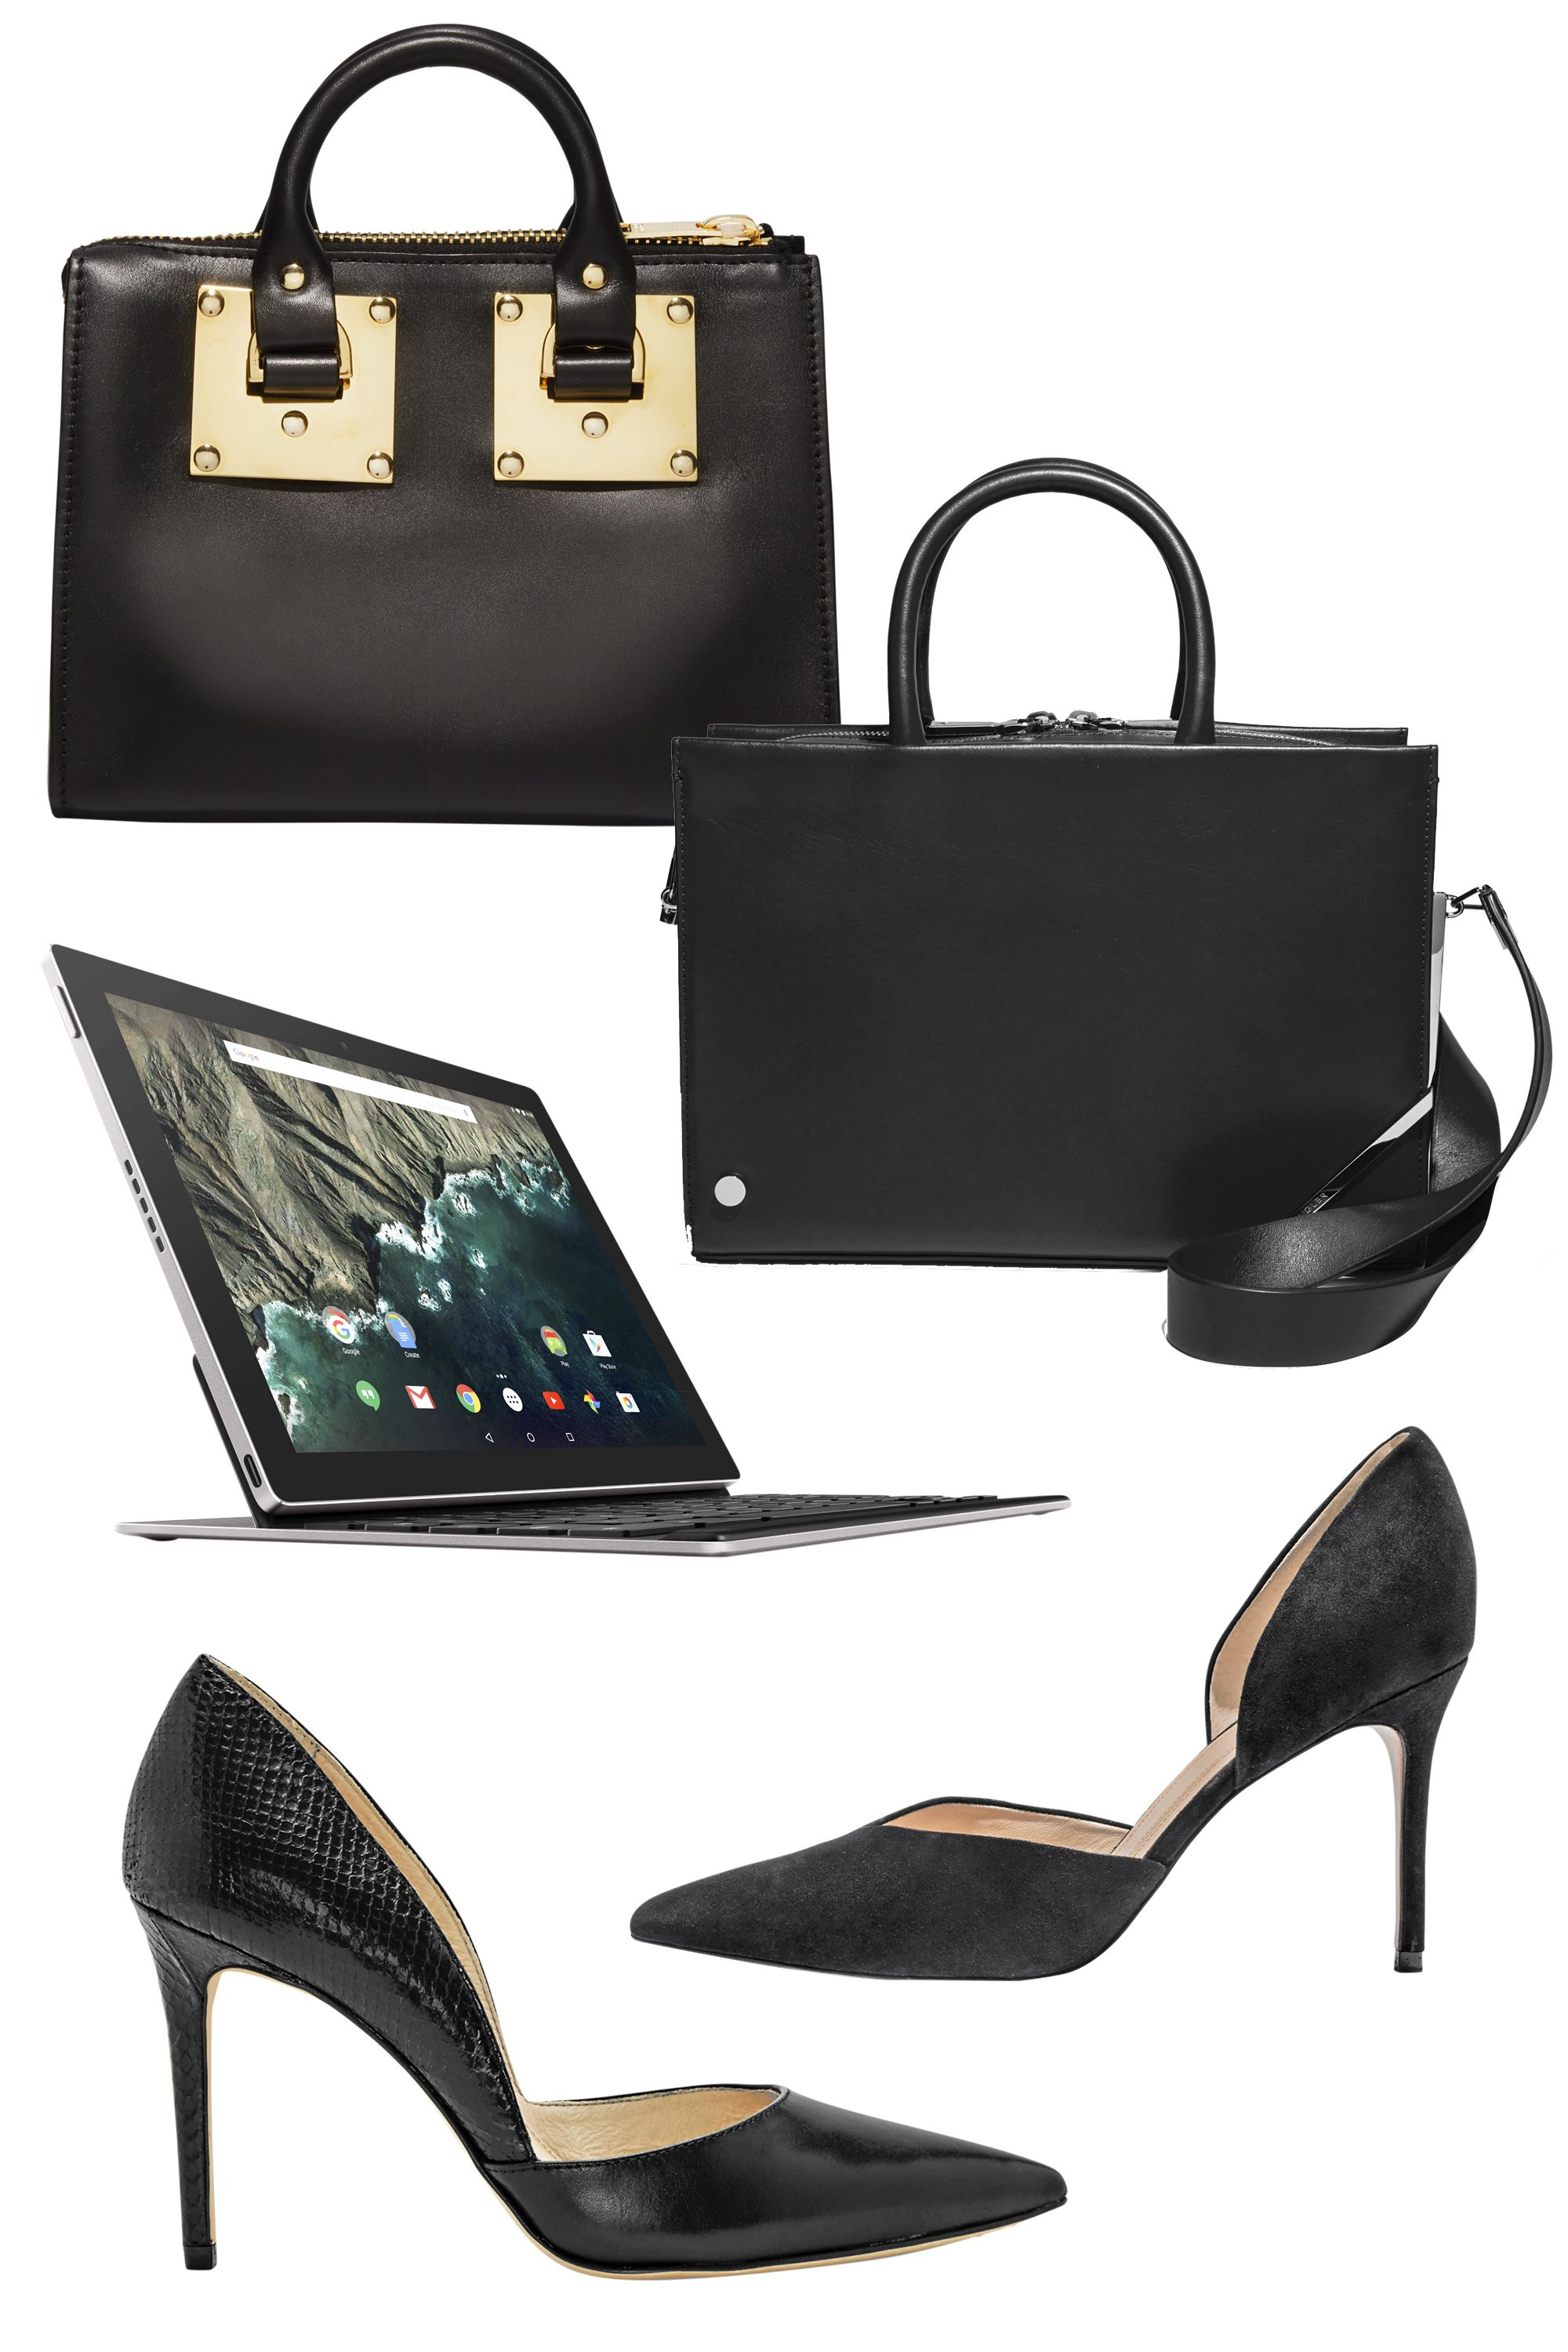 "<p><strong>STYLIST'S TIP</strong>: A black satchel has day-to-night appeal.<span class=""redactor-invisible-space""></span> </p><p>• Opt for a structured, top-handle bag.<br> </p><p>• Elongate your legs with sophisticated pointed-toe pumps. </p><p>• Choose classic gold statement jewelry for a feminine accent. </p><p><strong>Sophie Hulme</strong> tote, $985, <a href=""http://www.sophiehulme.com/"">sophiehulme.com</a>; <strong>Mugler</strong> bag, $2,400, Bergdorf Goodman; 888-774-2424; <strong>Google Pixel C</strong> tablet, $499, and keyboard, $149, <a href=""http://www.google.com/"">store.google.com</a>; <strong>Louise et Cie</strong> pump, $118, <a href=""http://www.louiseetcie.com/"">louiseetcie.com</a>; <strong>Marc Fisher</strong> LTD pump, $160, <a href=""http://www.marcfisherfootwear.com/"">marcfisherfootwear.com</a>.</p>"